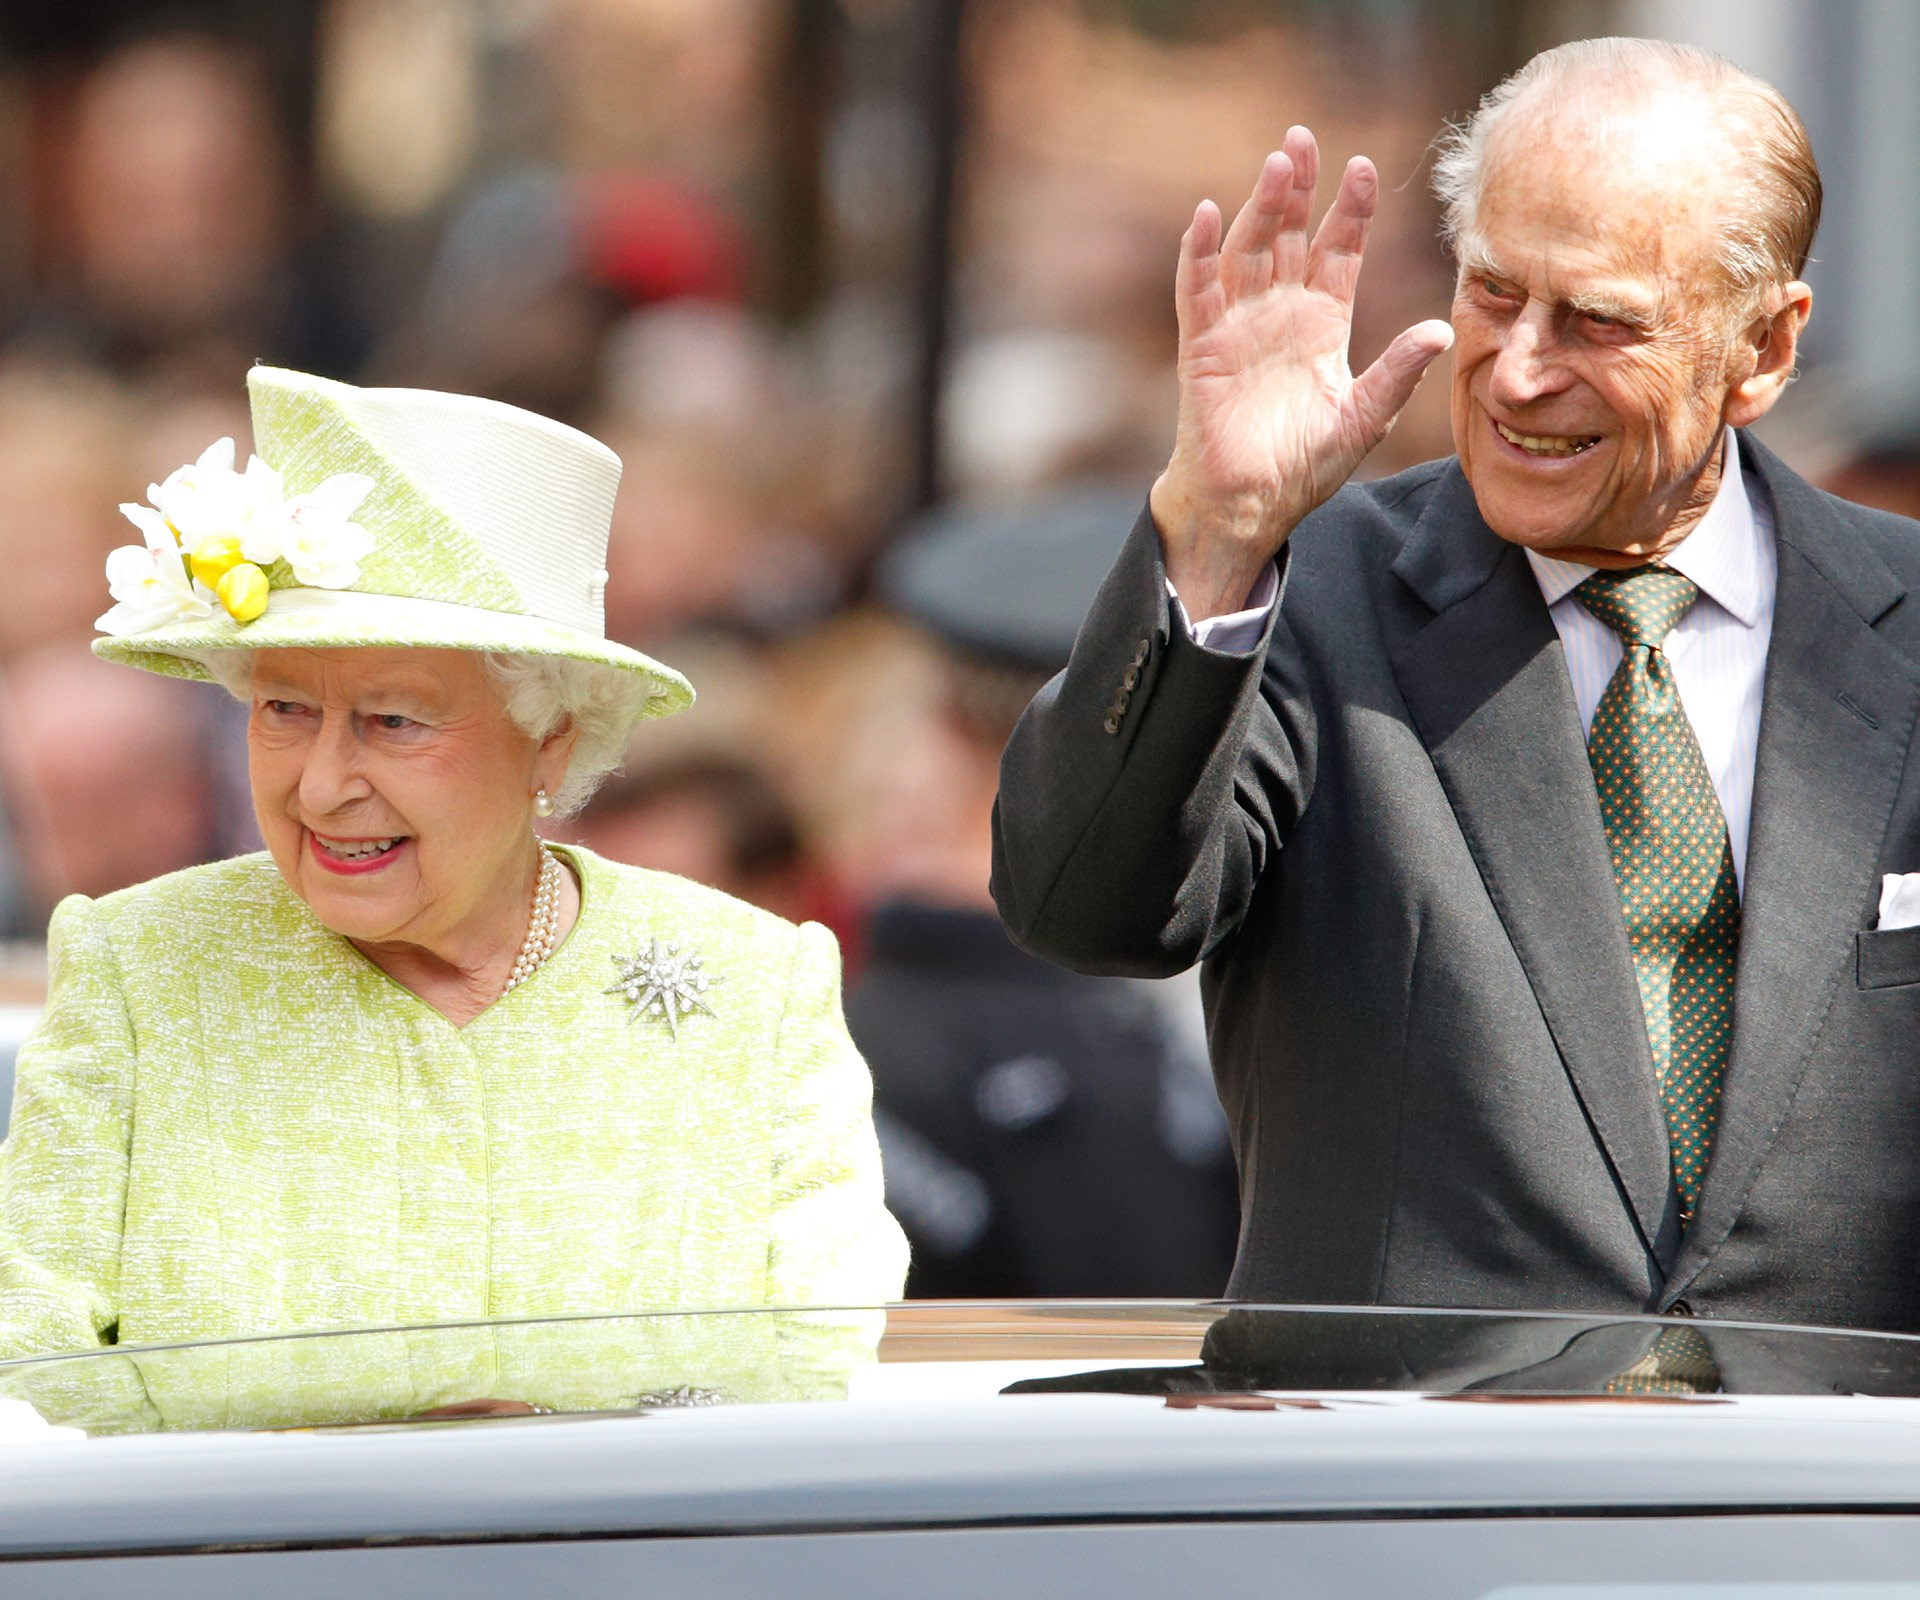 The pair were as merry as can be during Queen Elizabeth's 90th birthday celebrations in 2016.